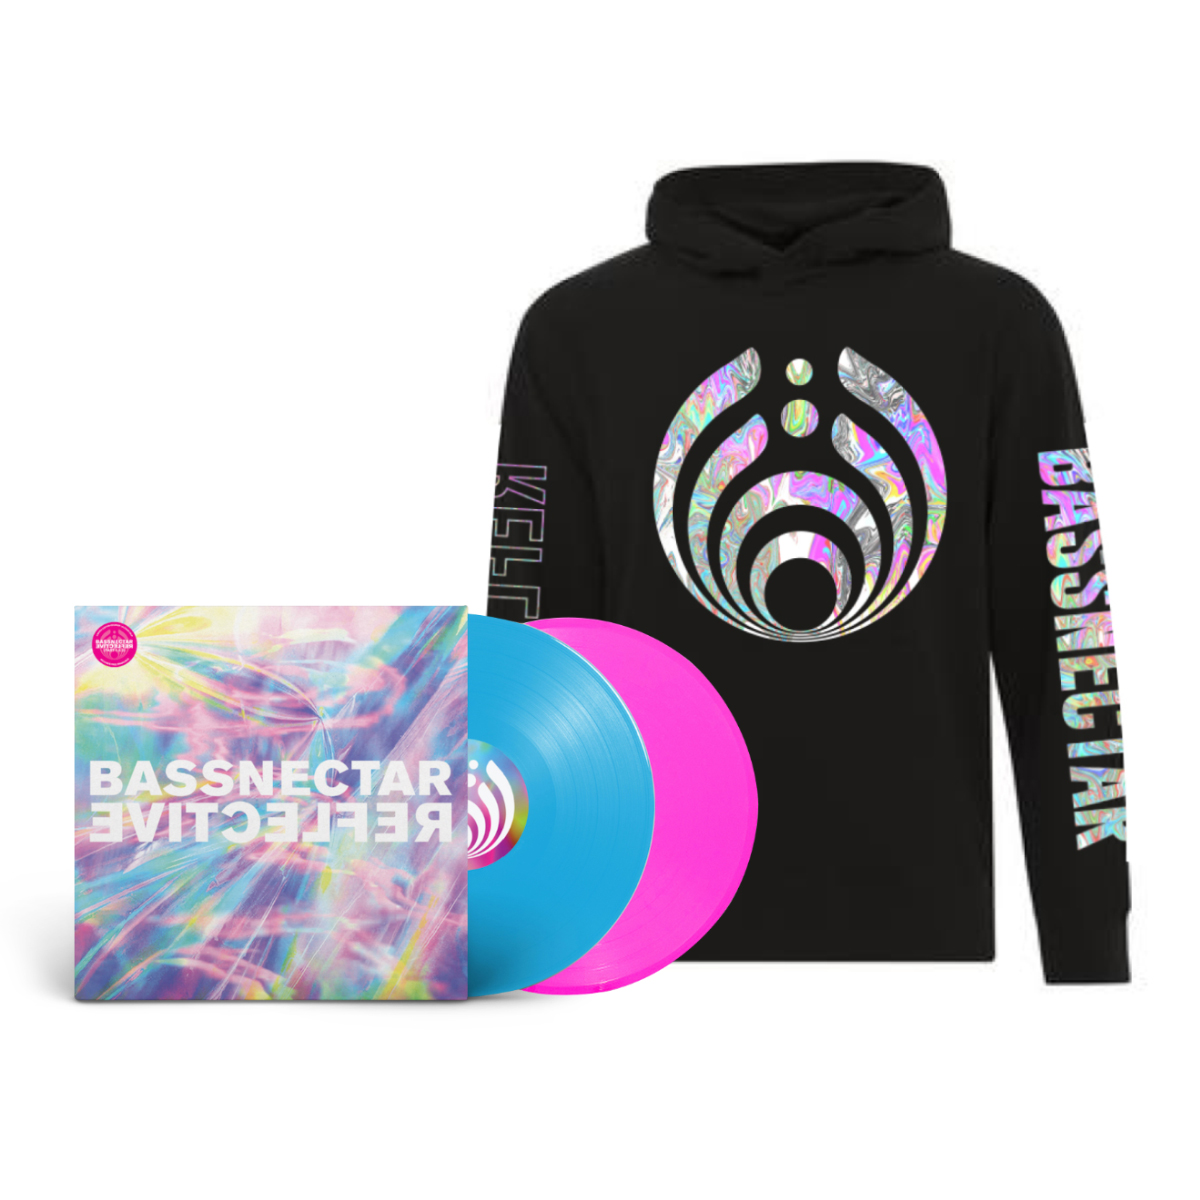 Reflective (Part 1 & 2) LP + Black Hoodie Bundle